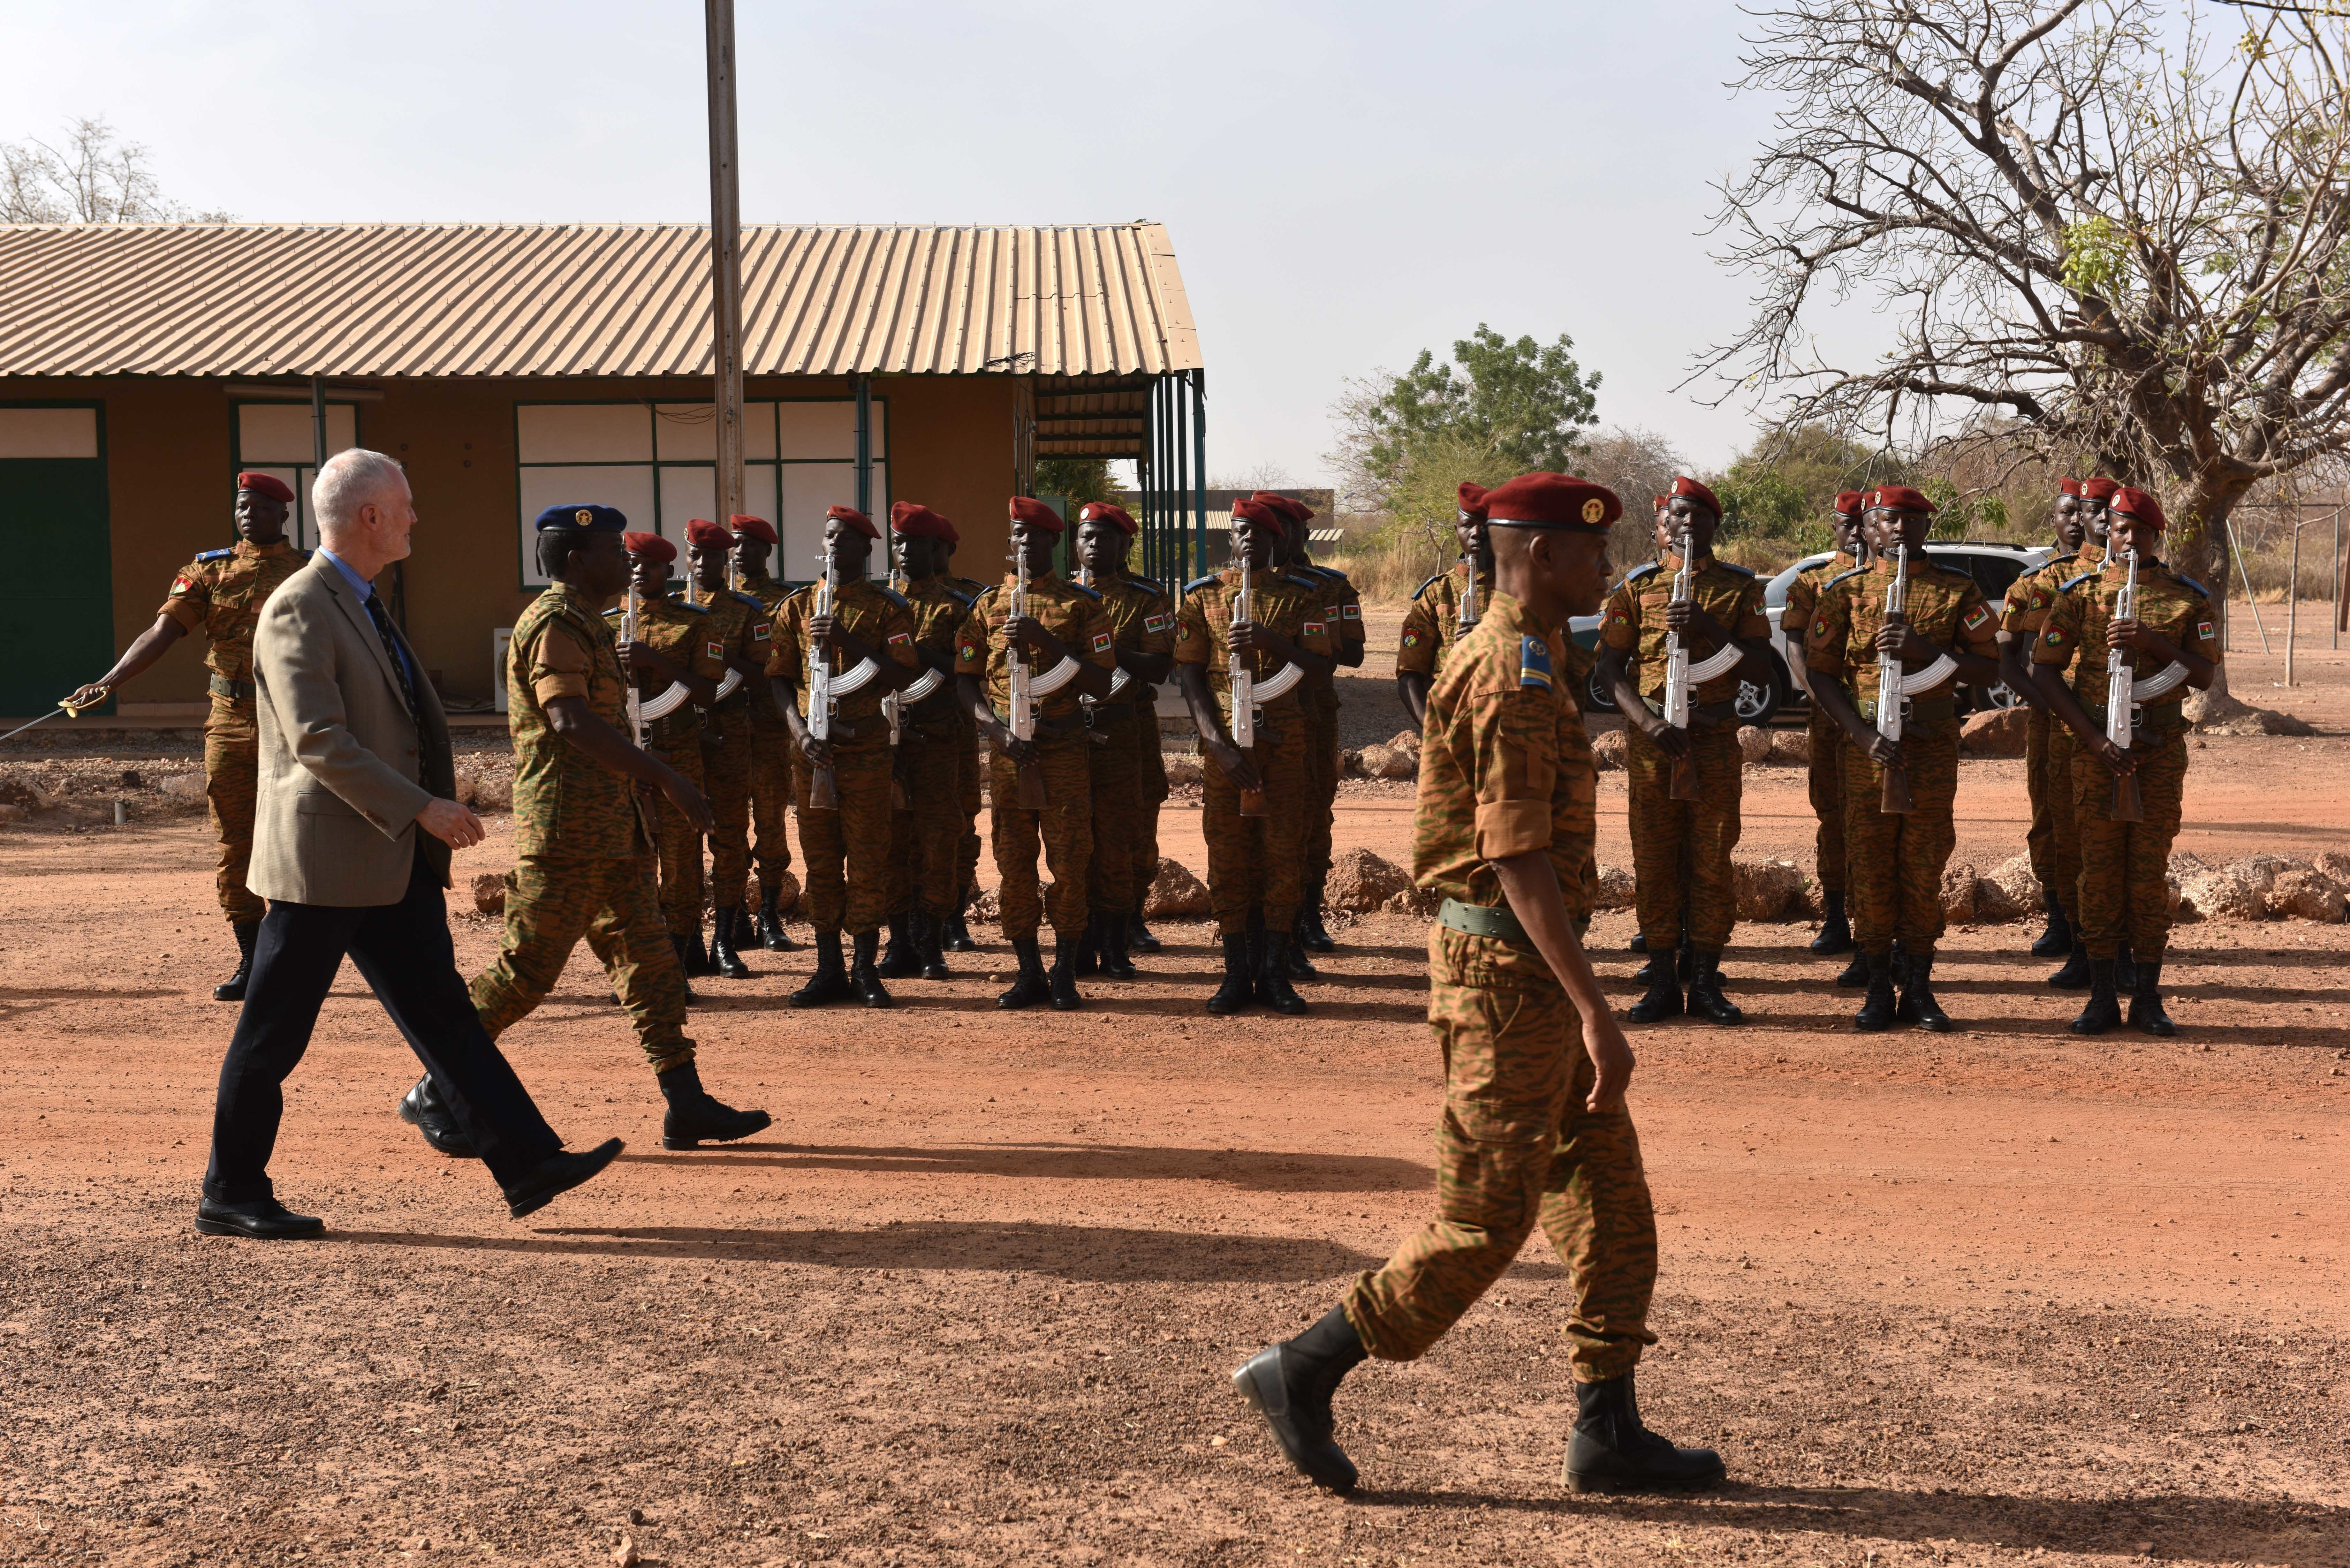 David Young, the Deputy Chief of Mission for the U.S. Embassy Burkina Faso, is greeted by soldiers of  the Burkina Faso Army during the opening ceremony for Flintlock 2017 on Feb. 27, at Camp Zagre, Burkina Faso. Seven African partner nations are participating in Flintlock 2017 to include Burkina Faso, Niger, Morocco, Tunisia, Chad, Cameroon, and Mauritania. (U.S. Army photo by Sgt Benjamin Northcutt 3rd Special Forces Group (Airborne) Public Affairs Sergeant/released)